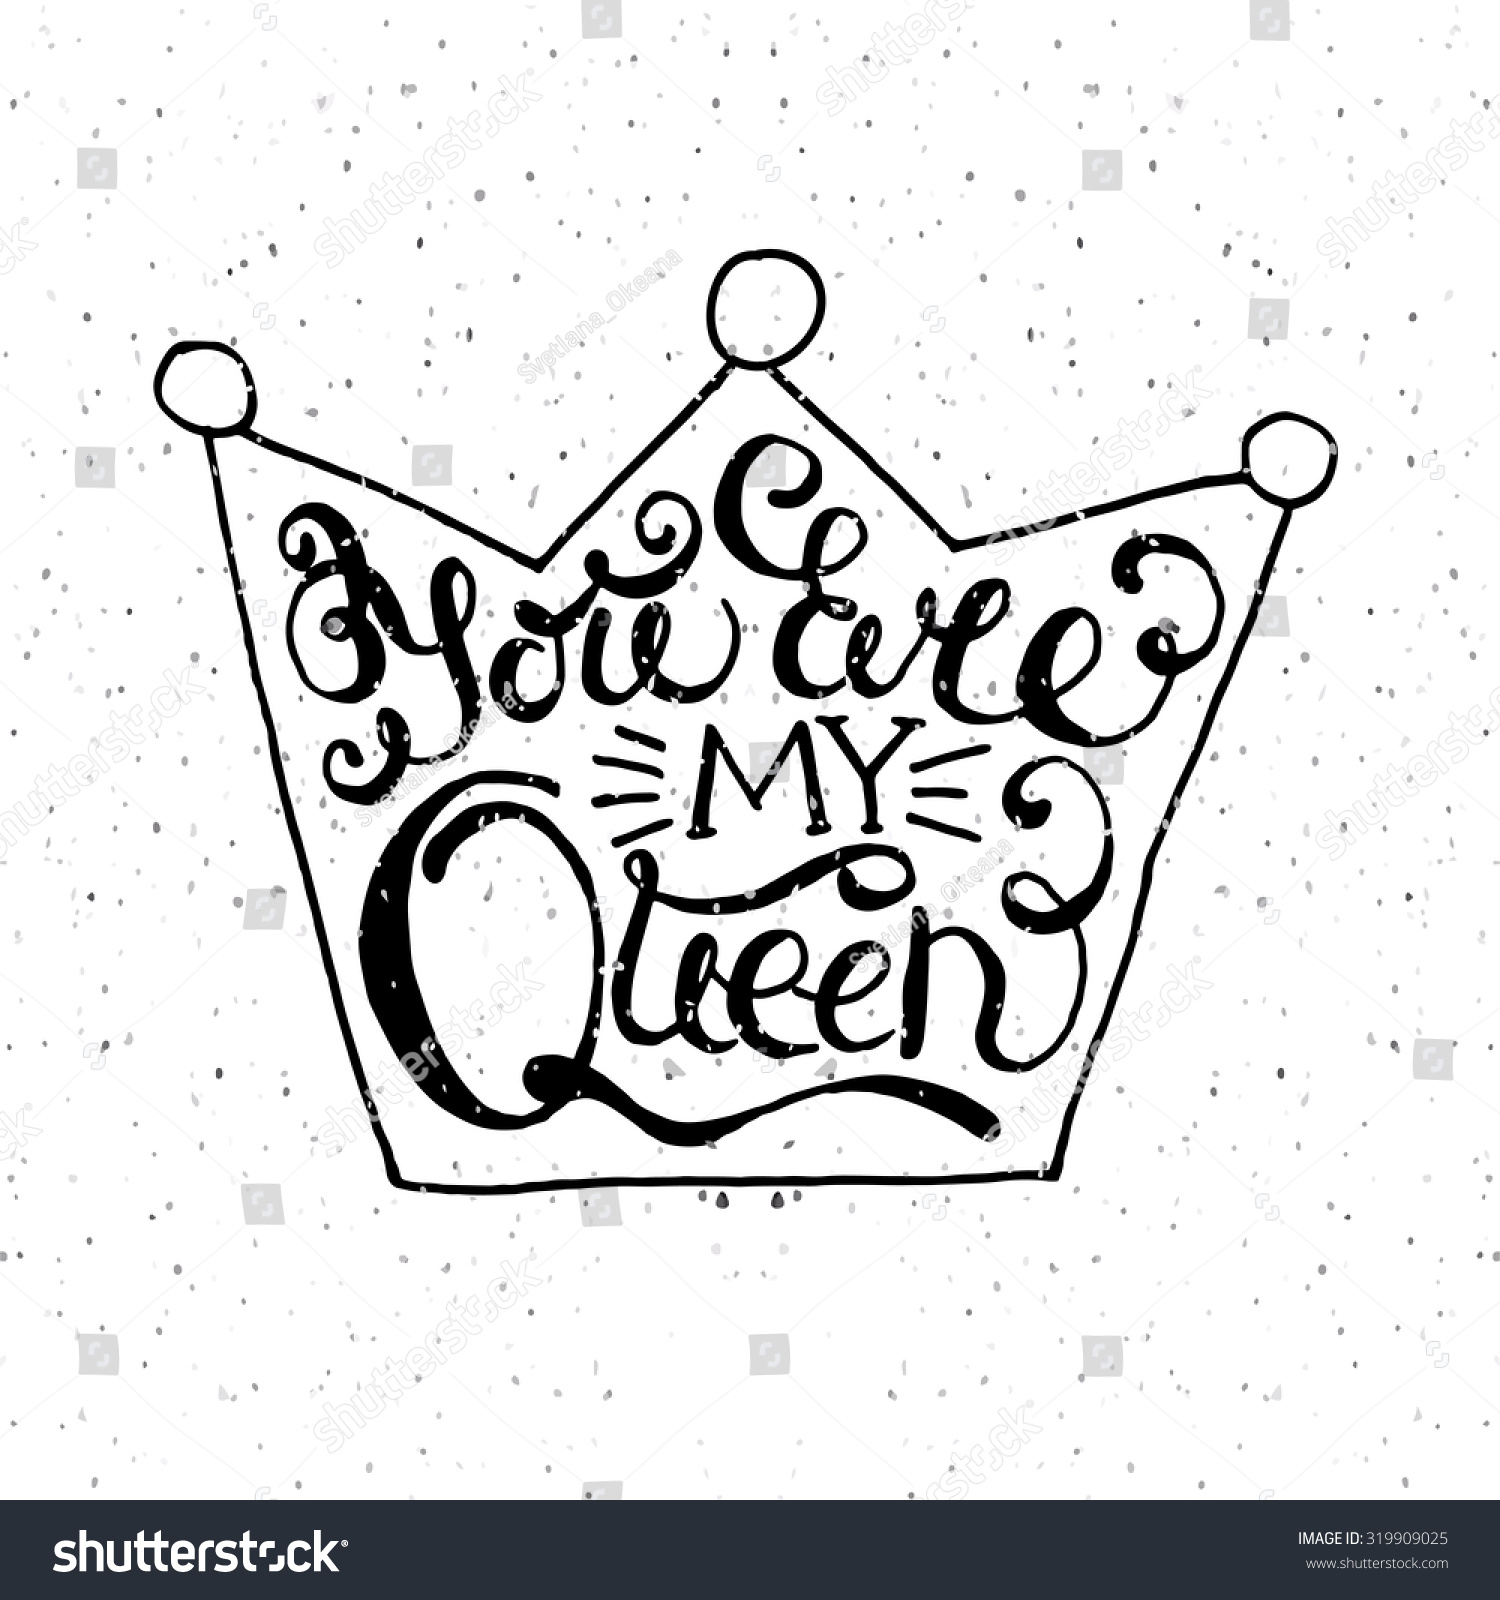 image.shutterstock.com/z/stock-vector-crown-with-h...